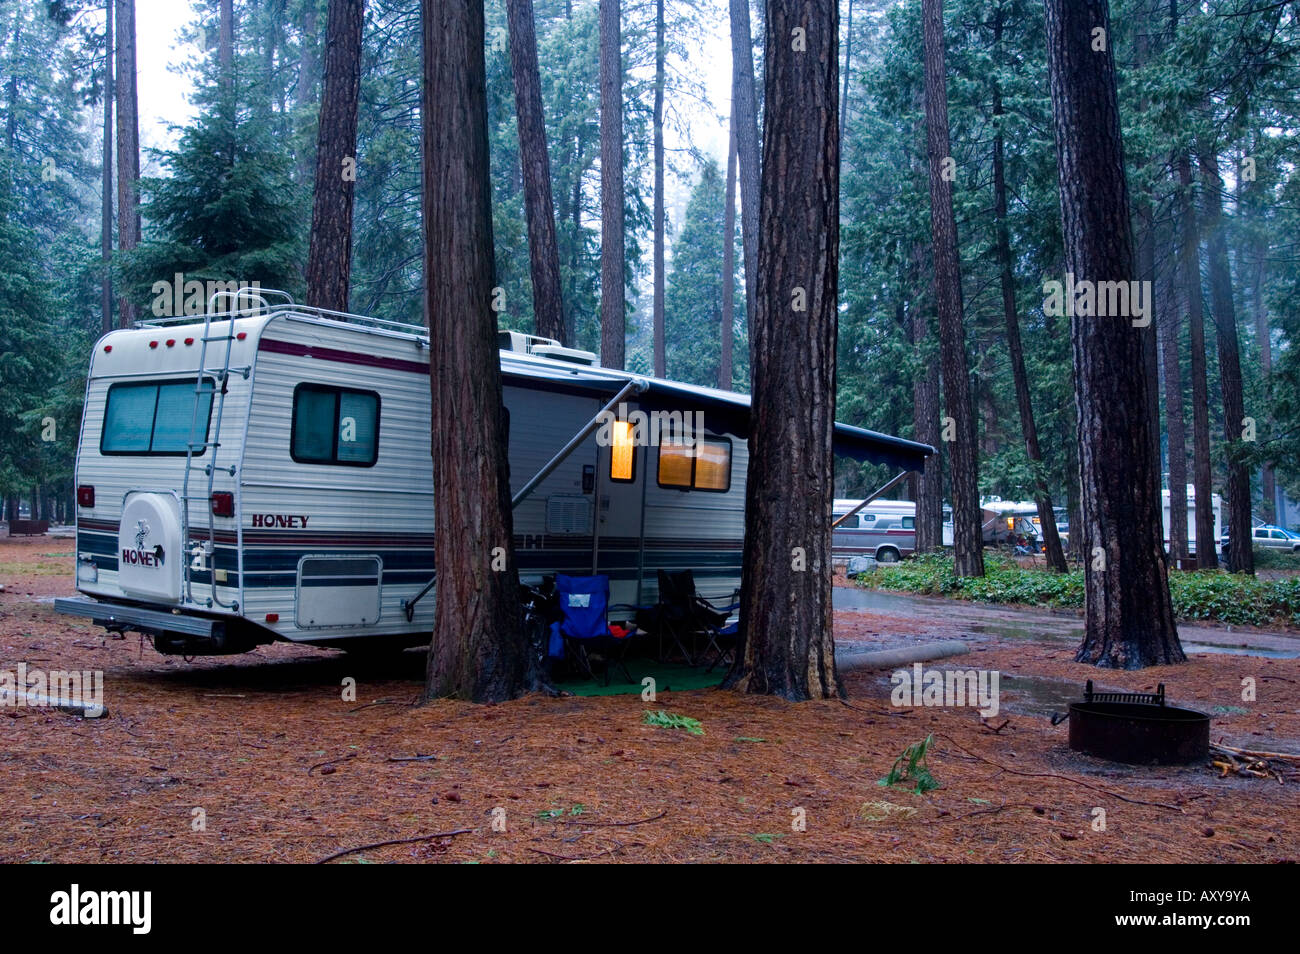 RV Camper Camping In Forest During Spring Rain Storm North Pines Campground Yosemite National Park California